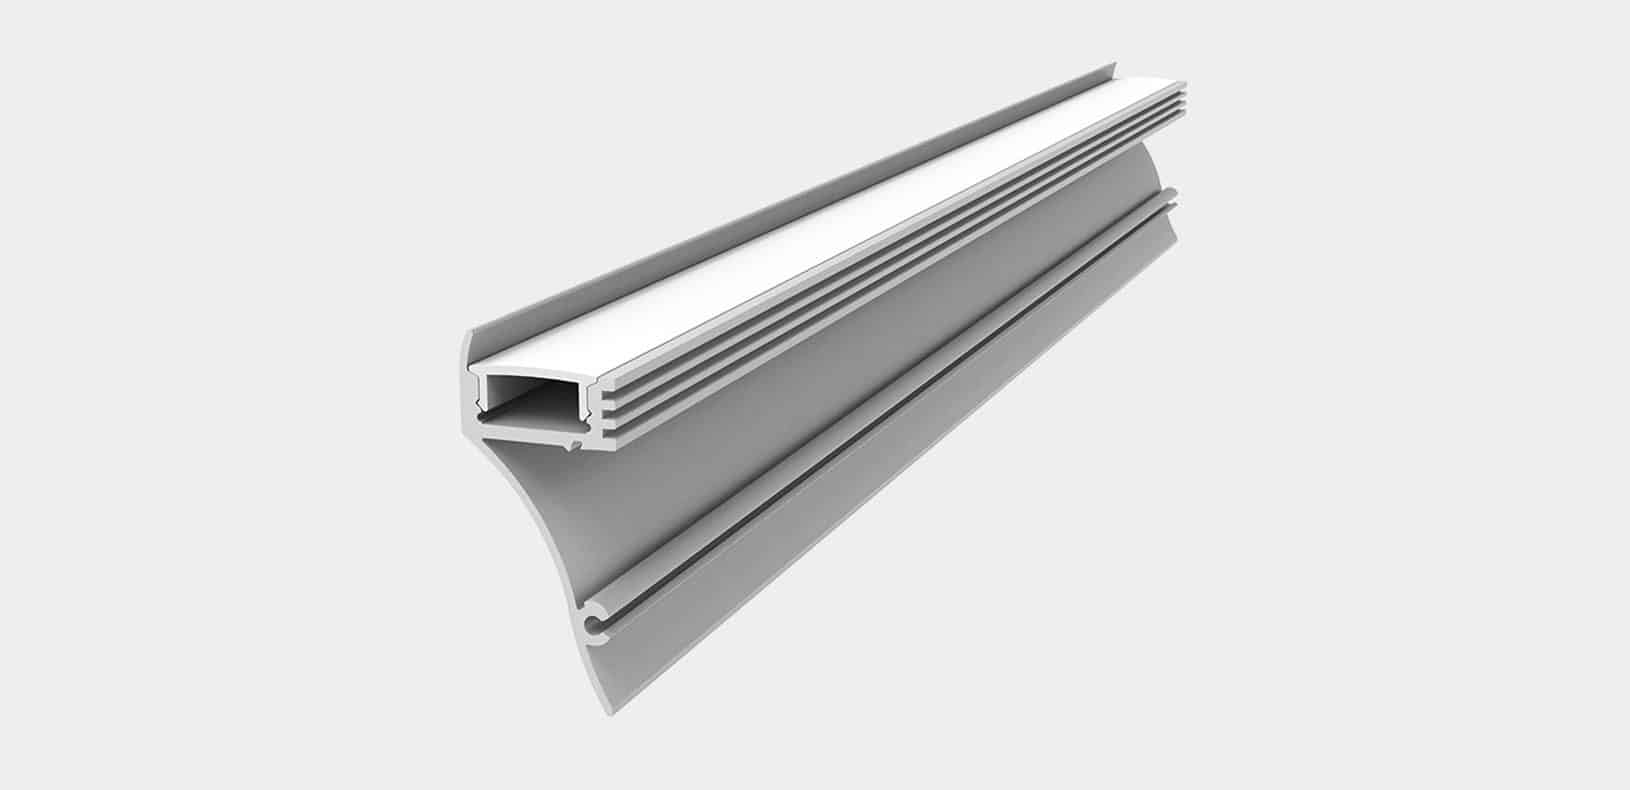 LED Aluminium Profile - Skirting Profile - LP4020